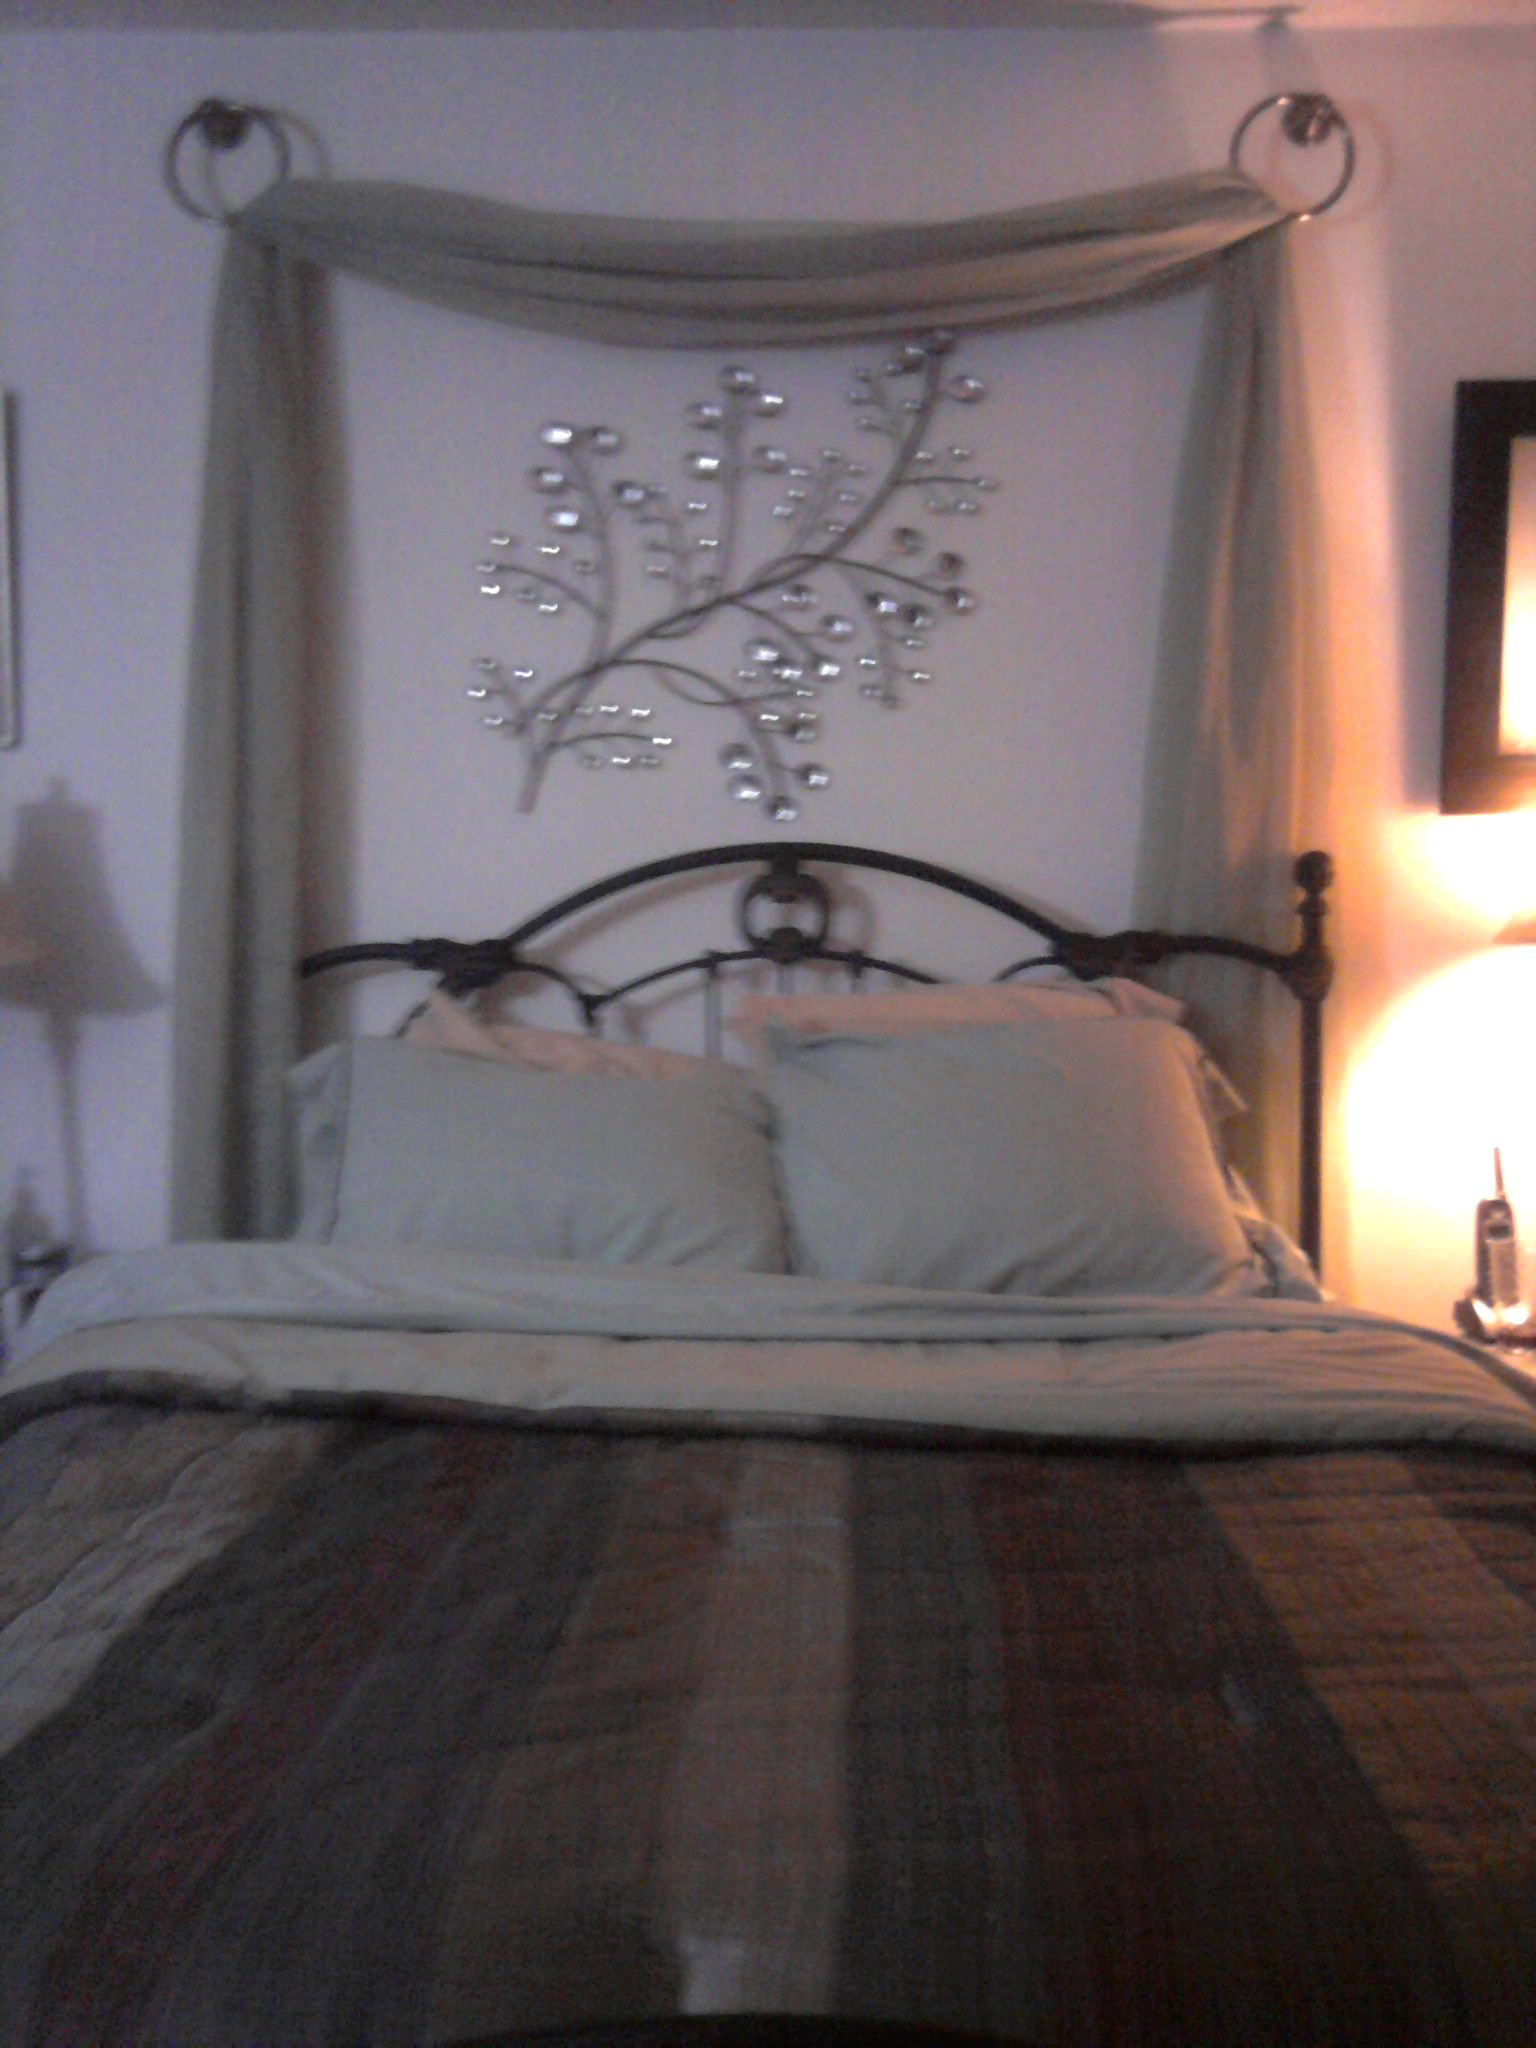 Wall Art Behind Bed Love The Drape Behind The Bed Home And Decor Pinterest